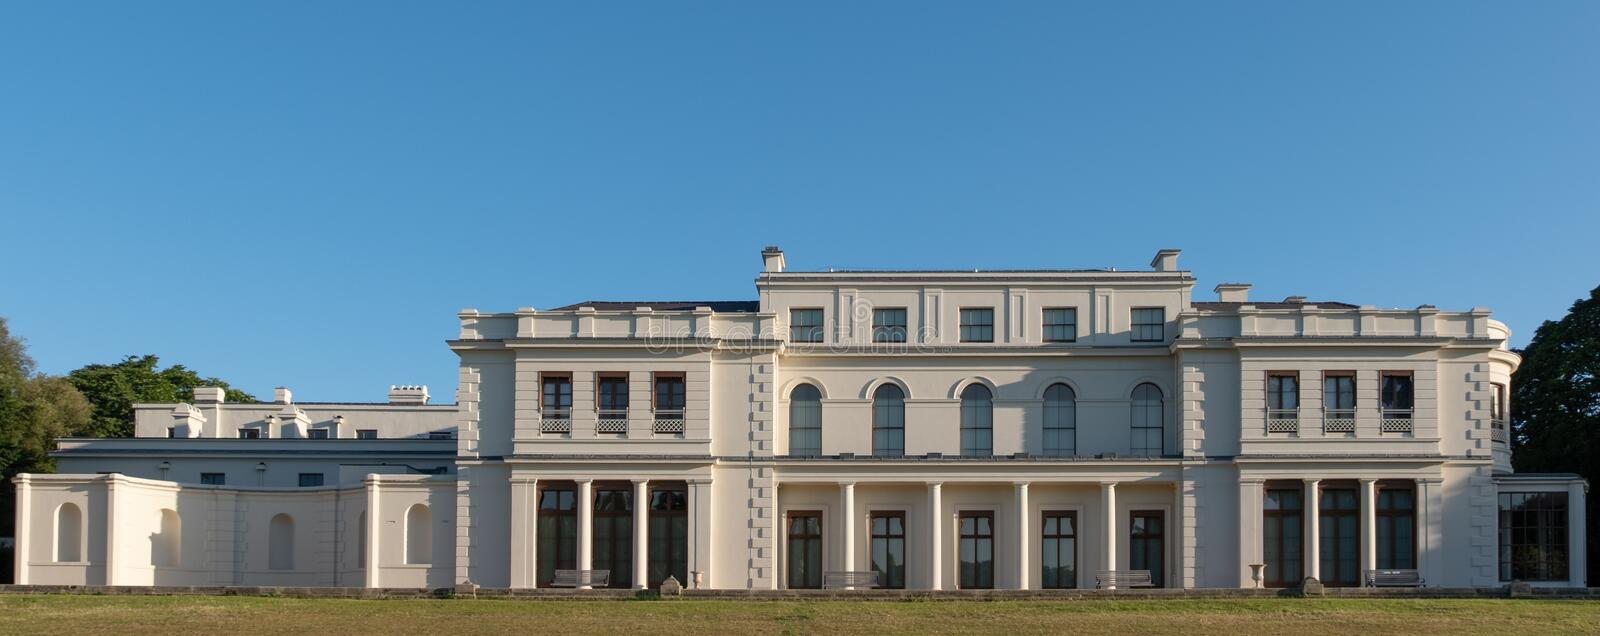 Newly renovated Gunnersbury Park and Museum on the Gunnersbury Estate, once owned by the Rothschild family, London UK. Newly renovated Gunnersbury Park and royalty free stock photography